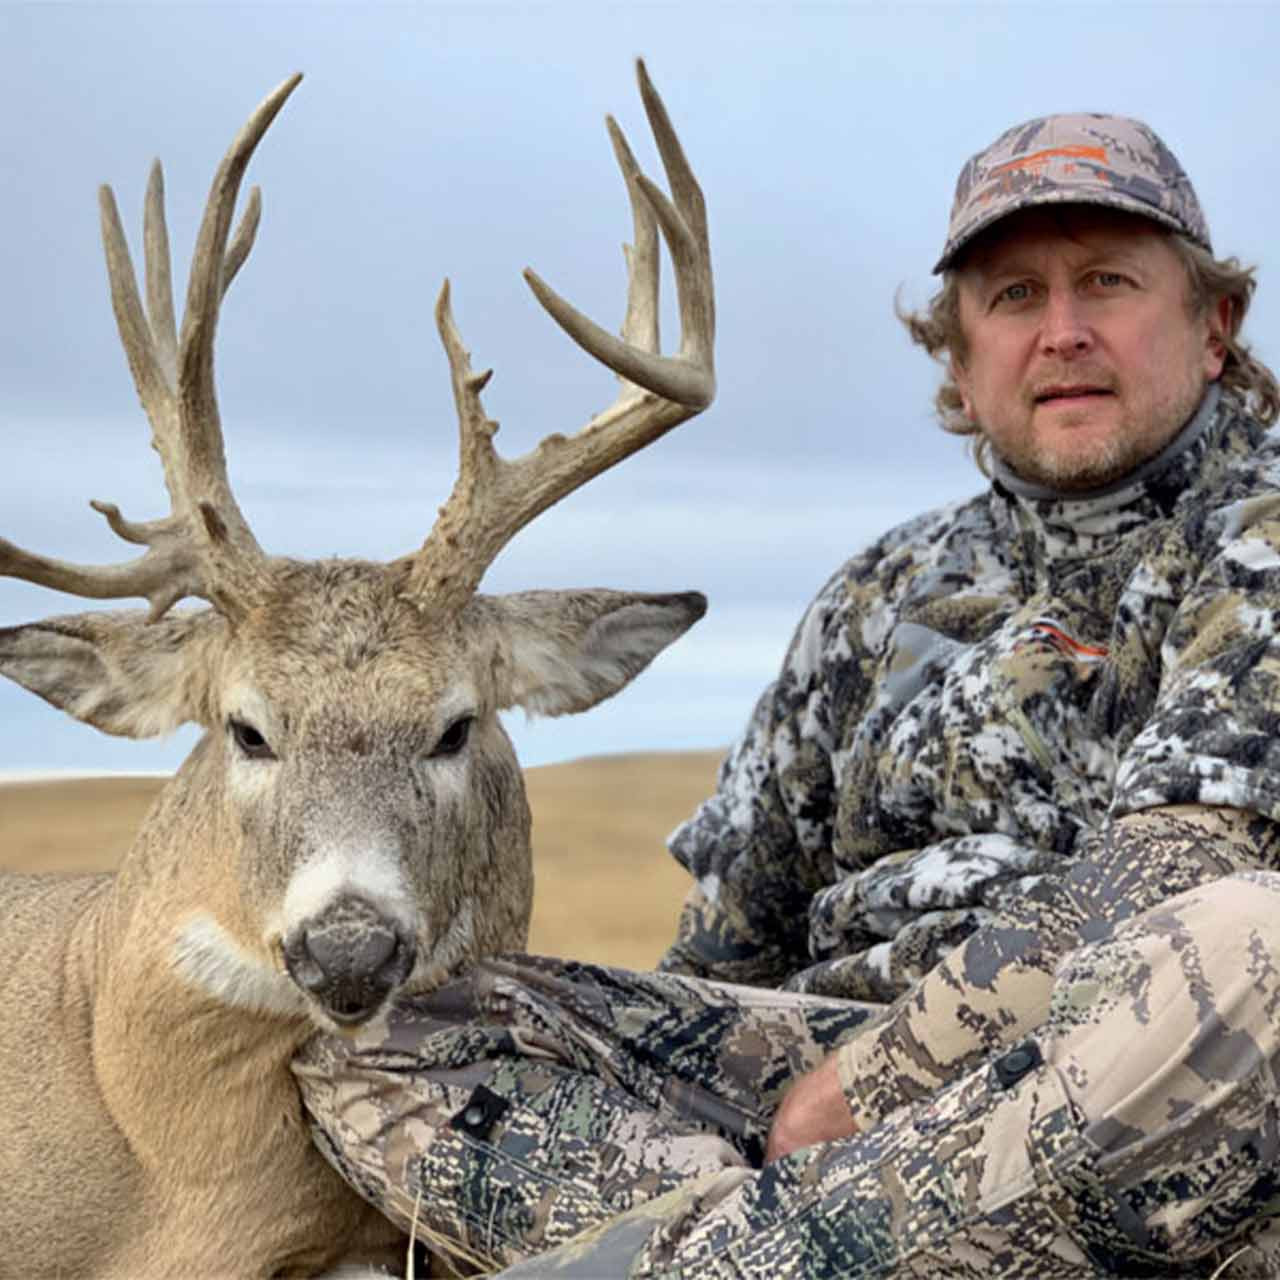 Whitetail deer hunt at Trophies Plus Outfitters